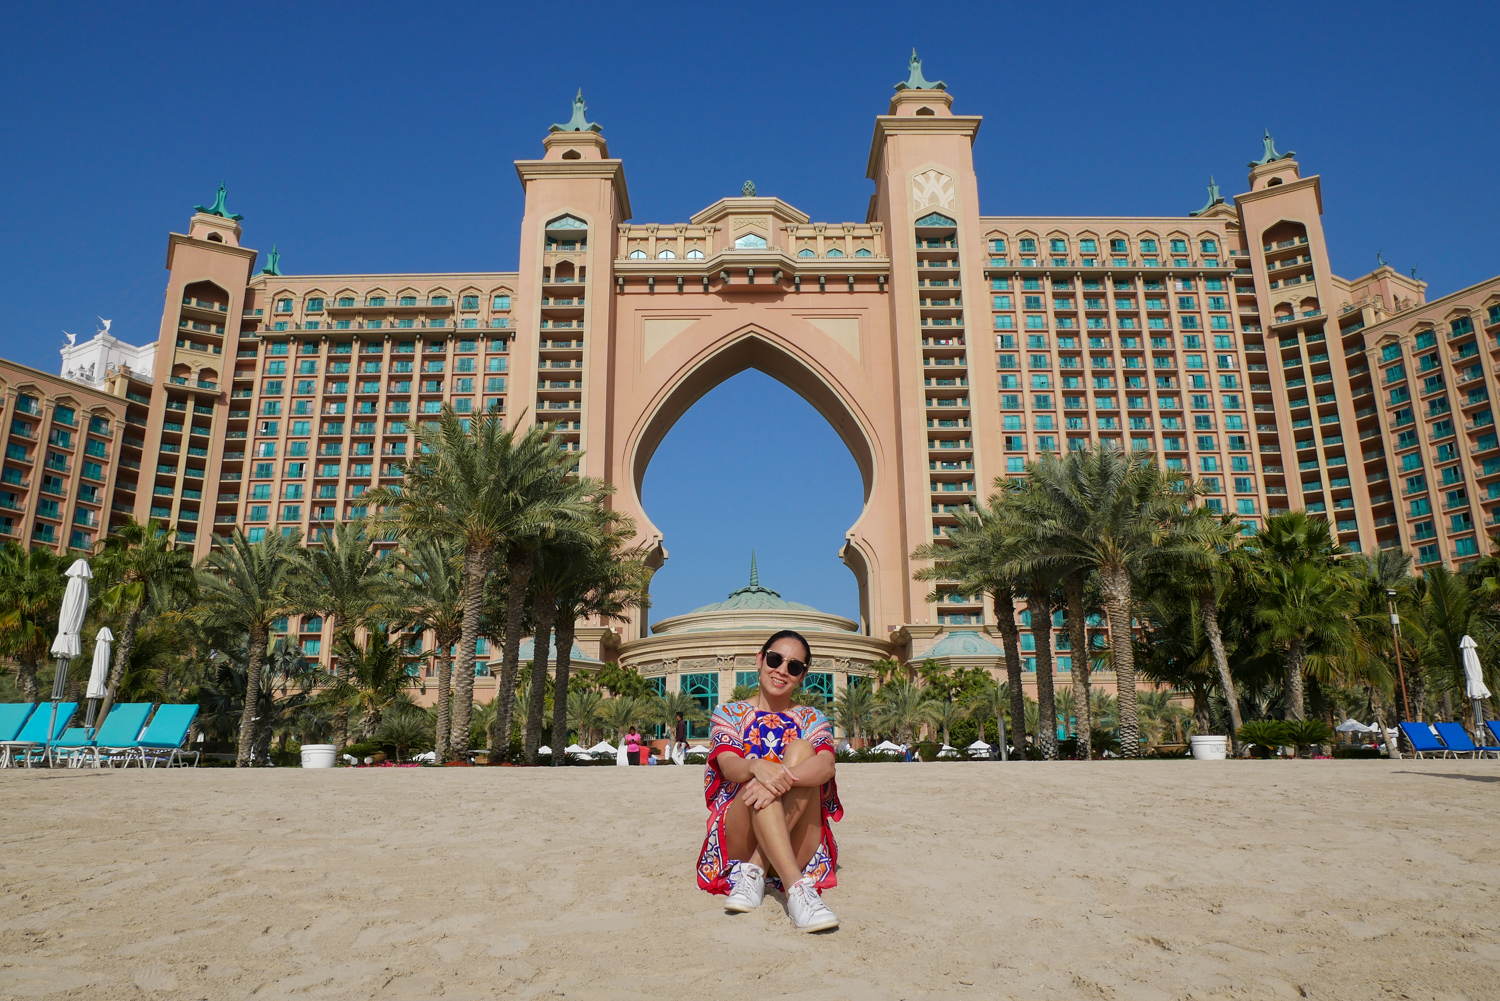 Atlantis, The Palm – ดูไบ